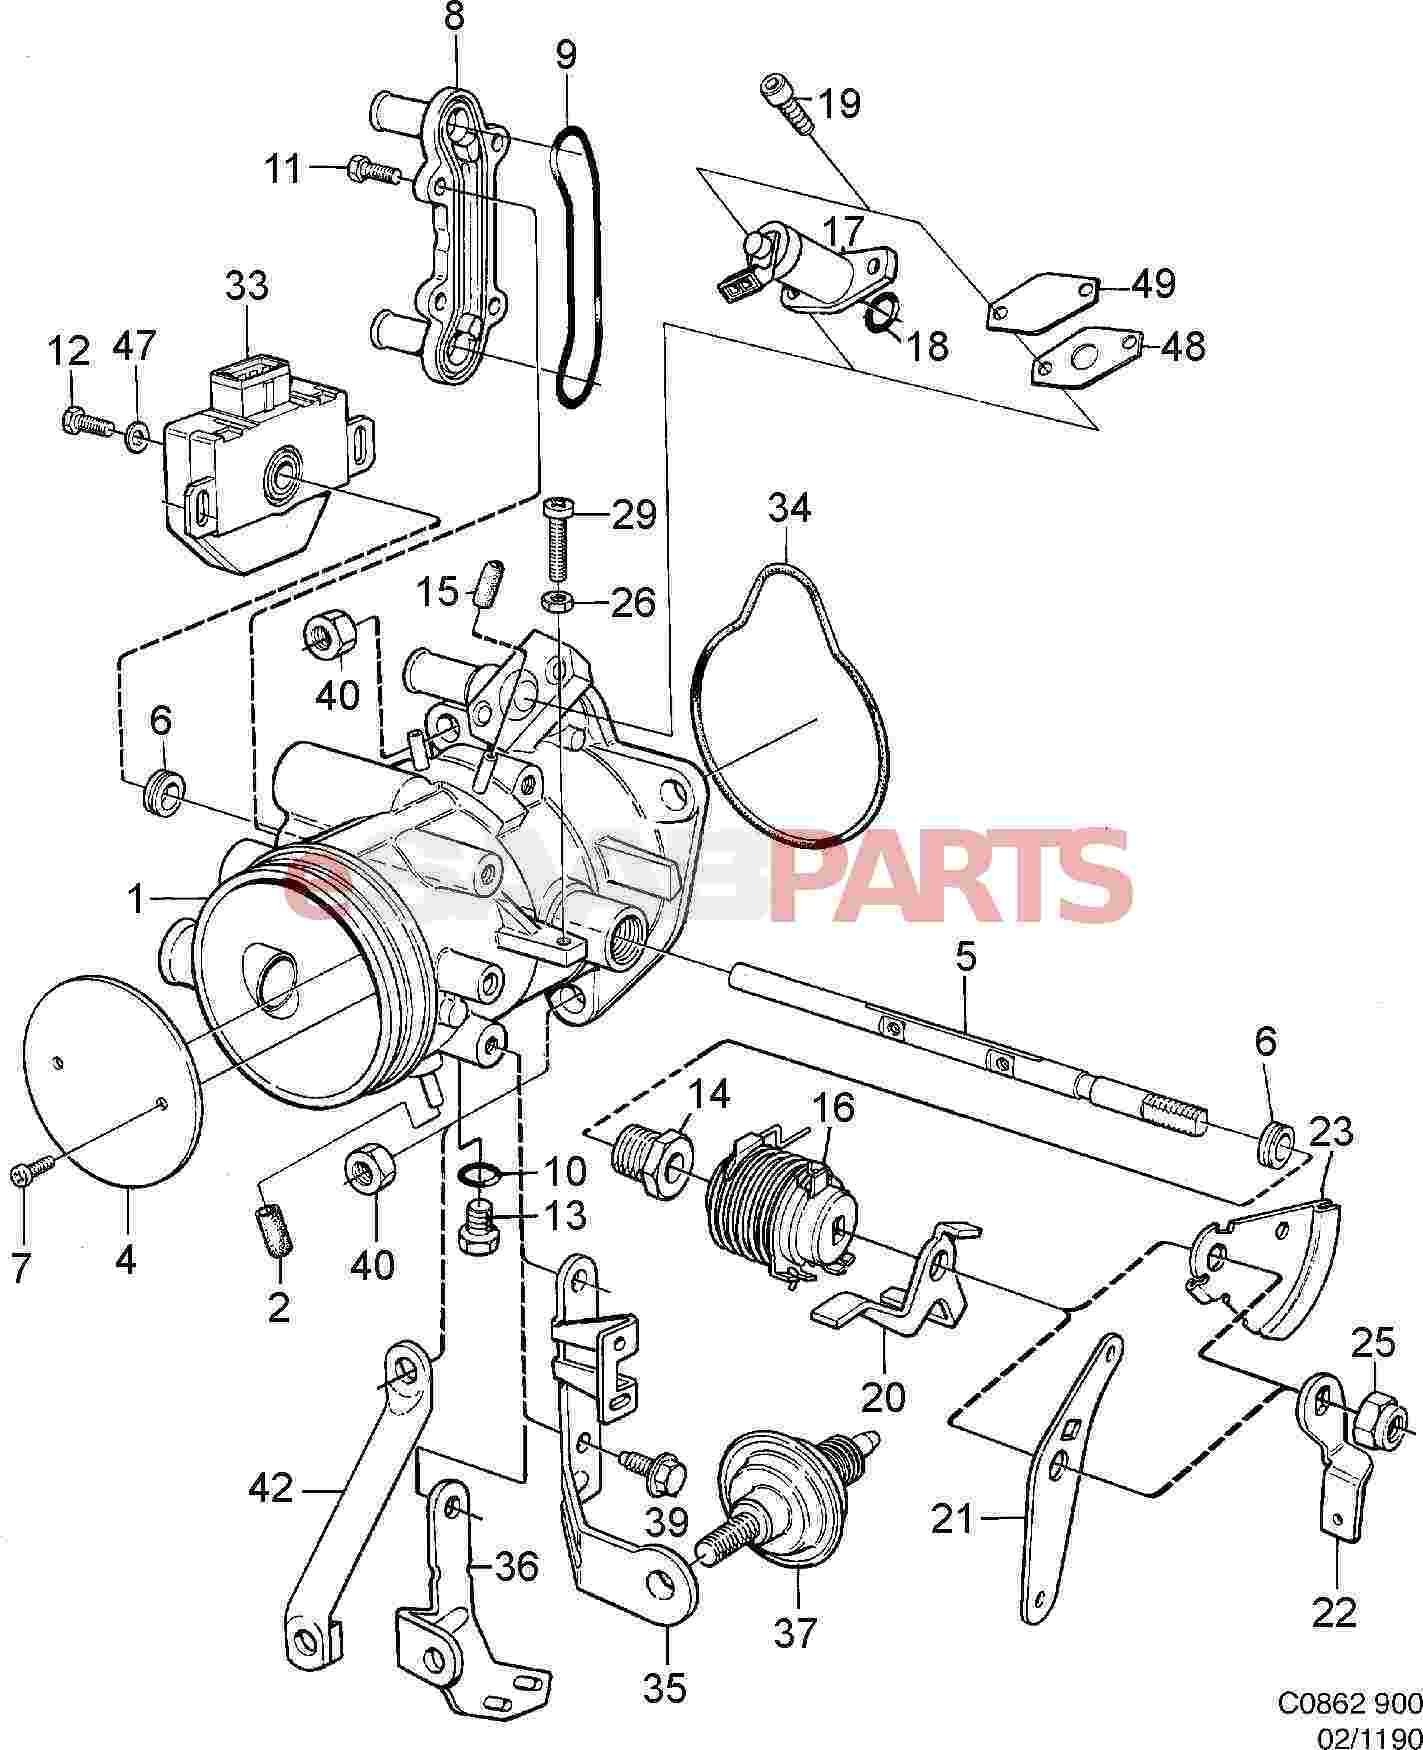 saab 9 3 linear engine diagram saab 9